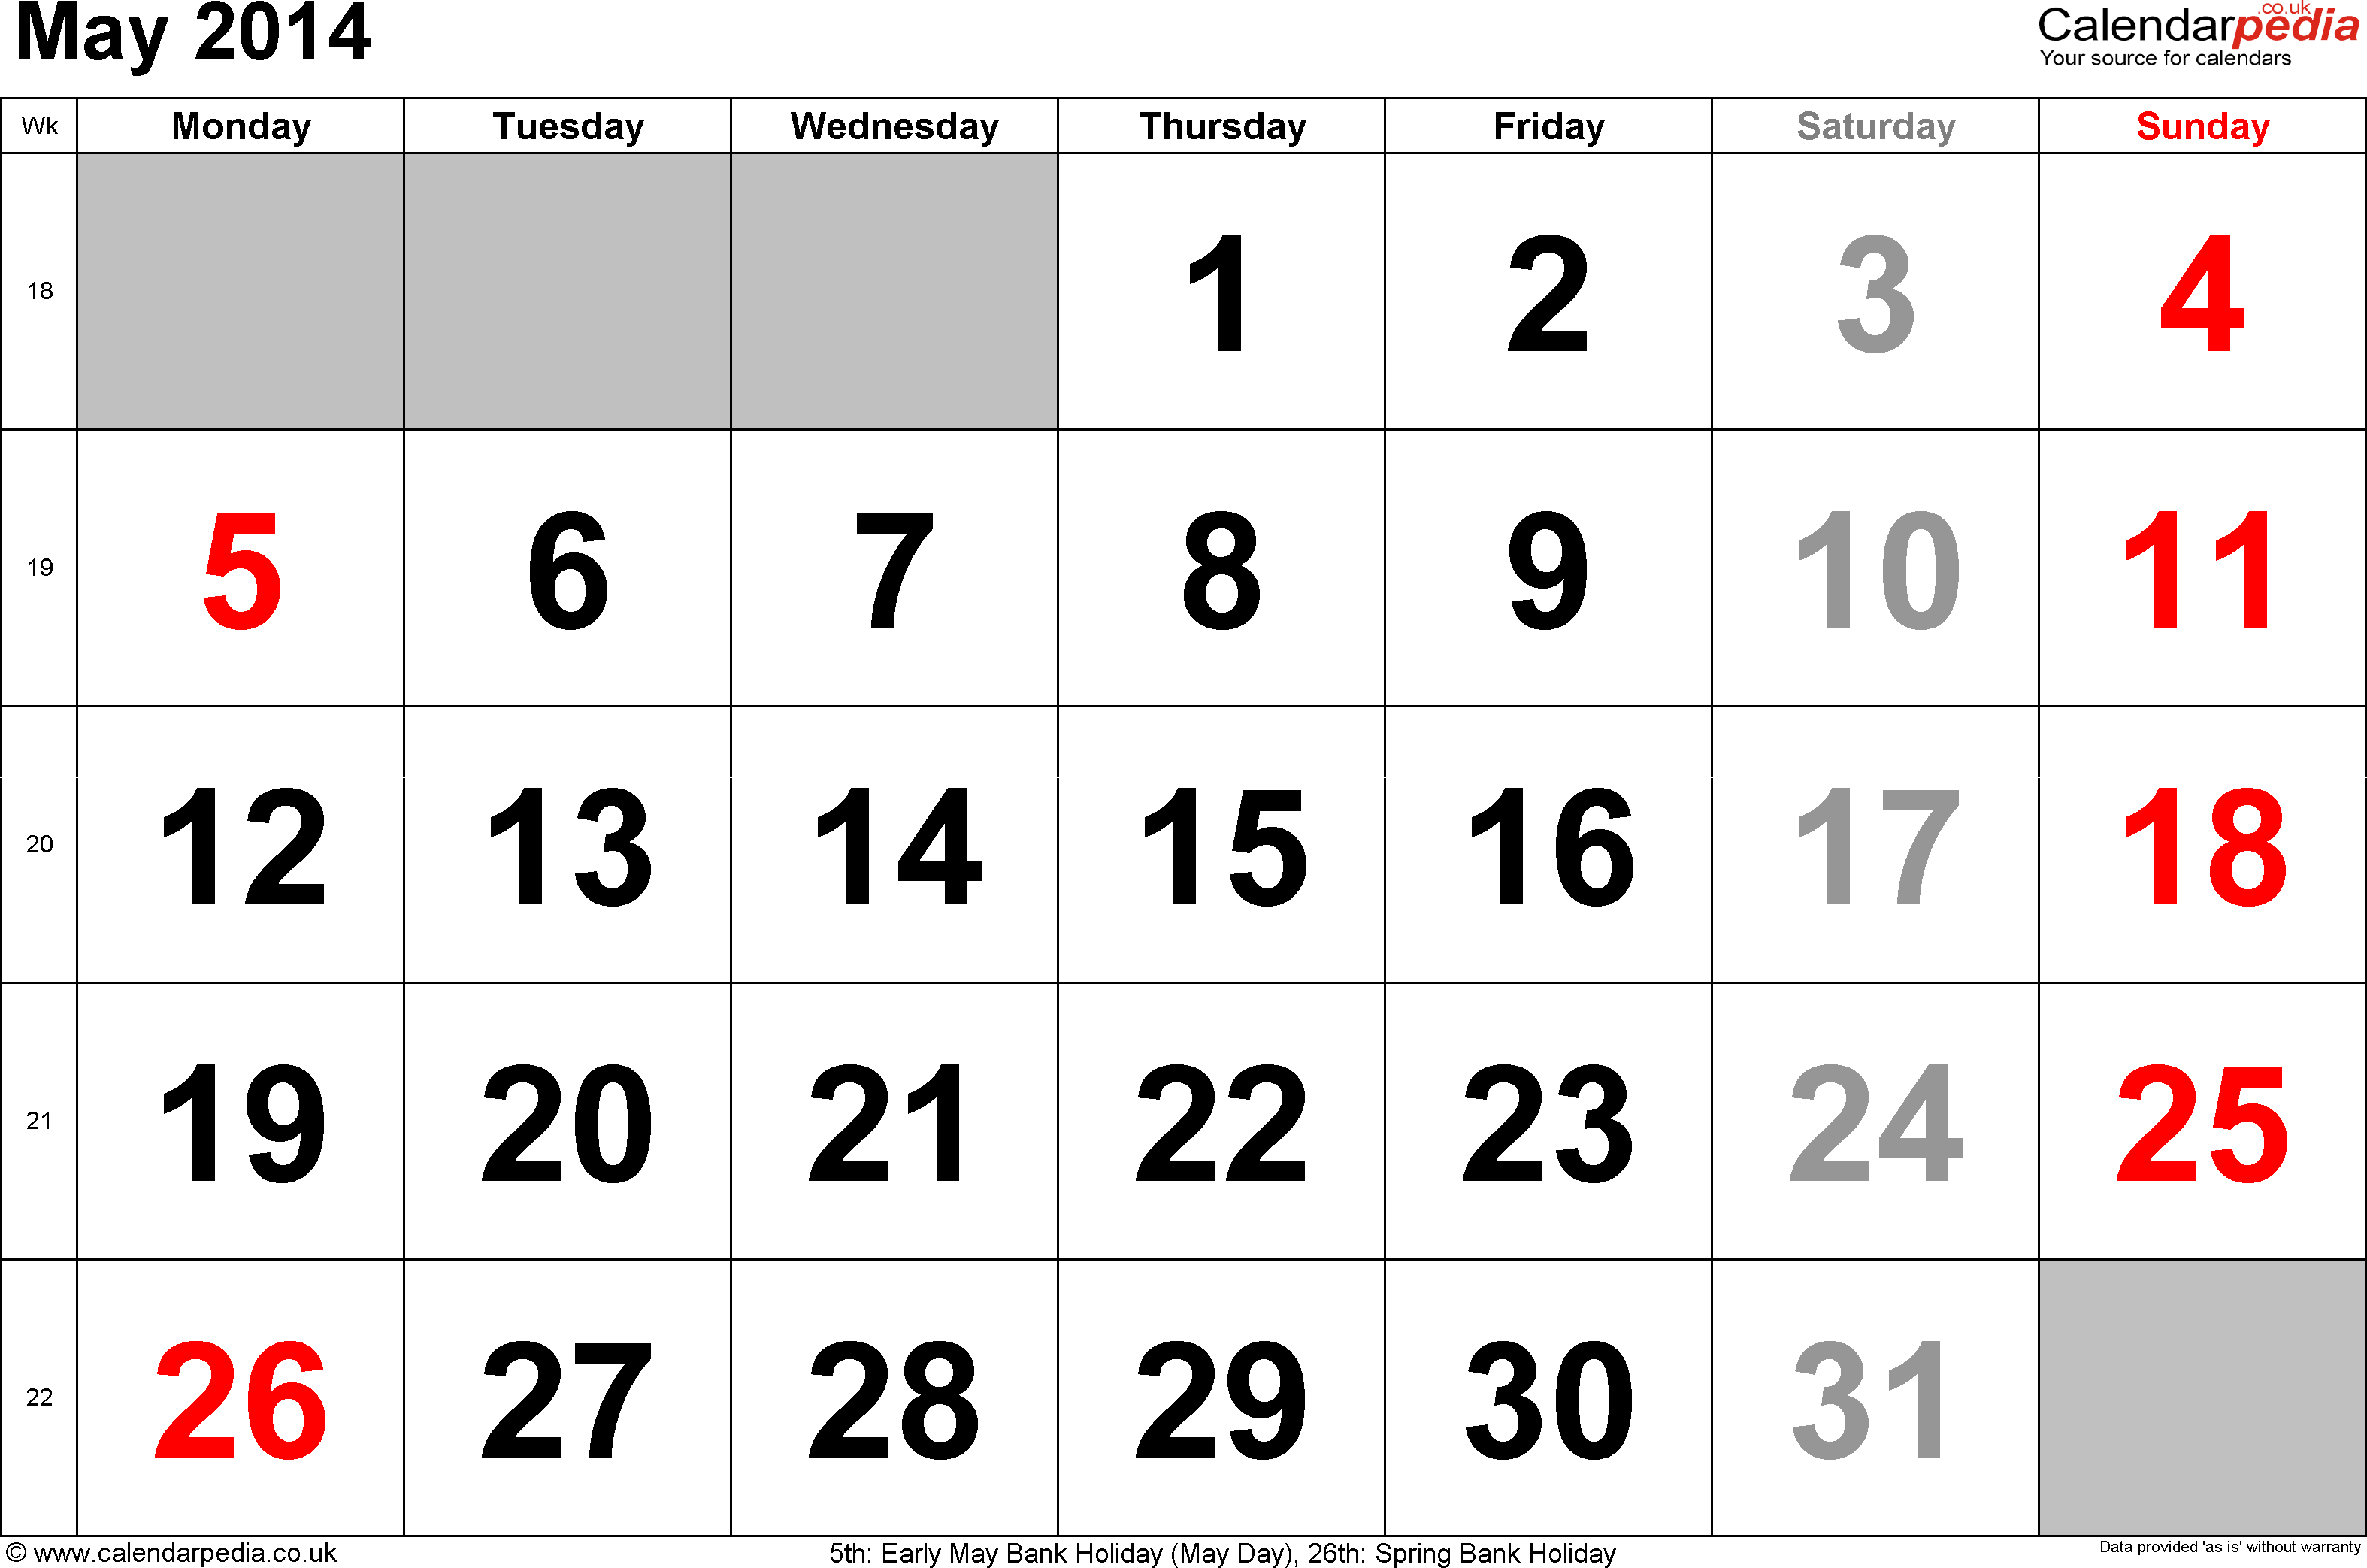 Calendar May 2014, landscape orientation, large numerals, 1 page, with UK bank holidays and week numbers